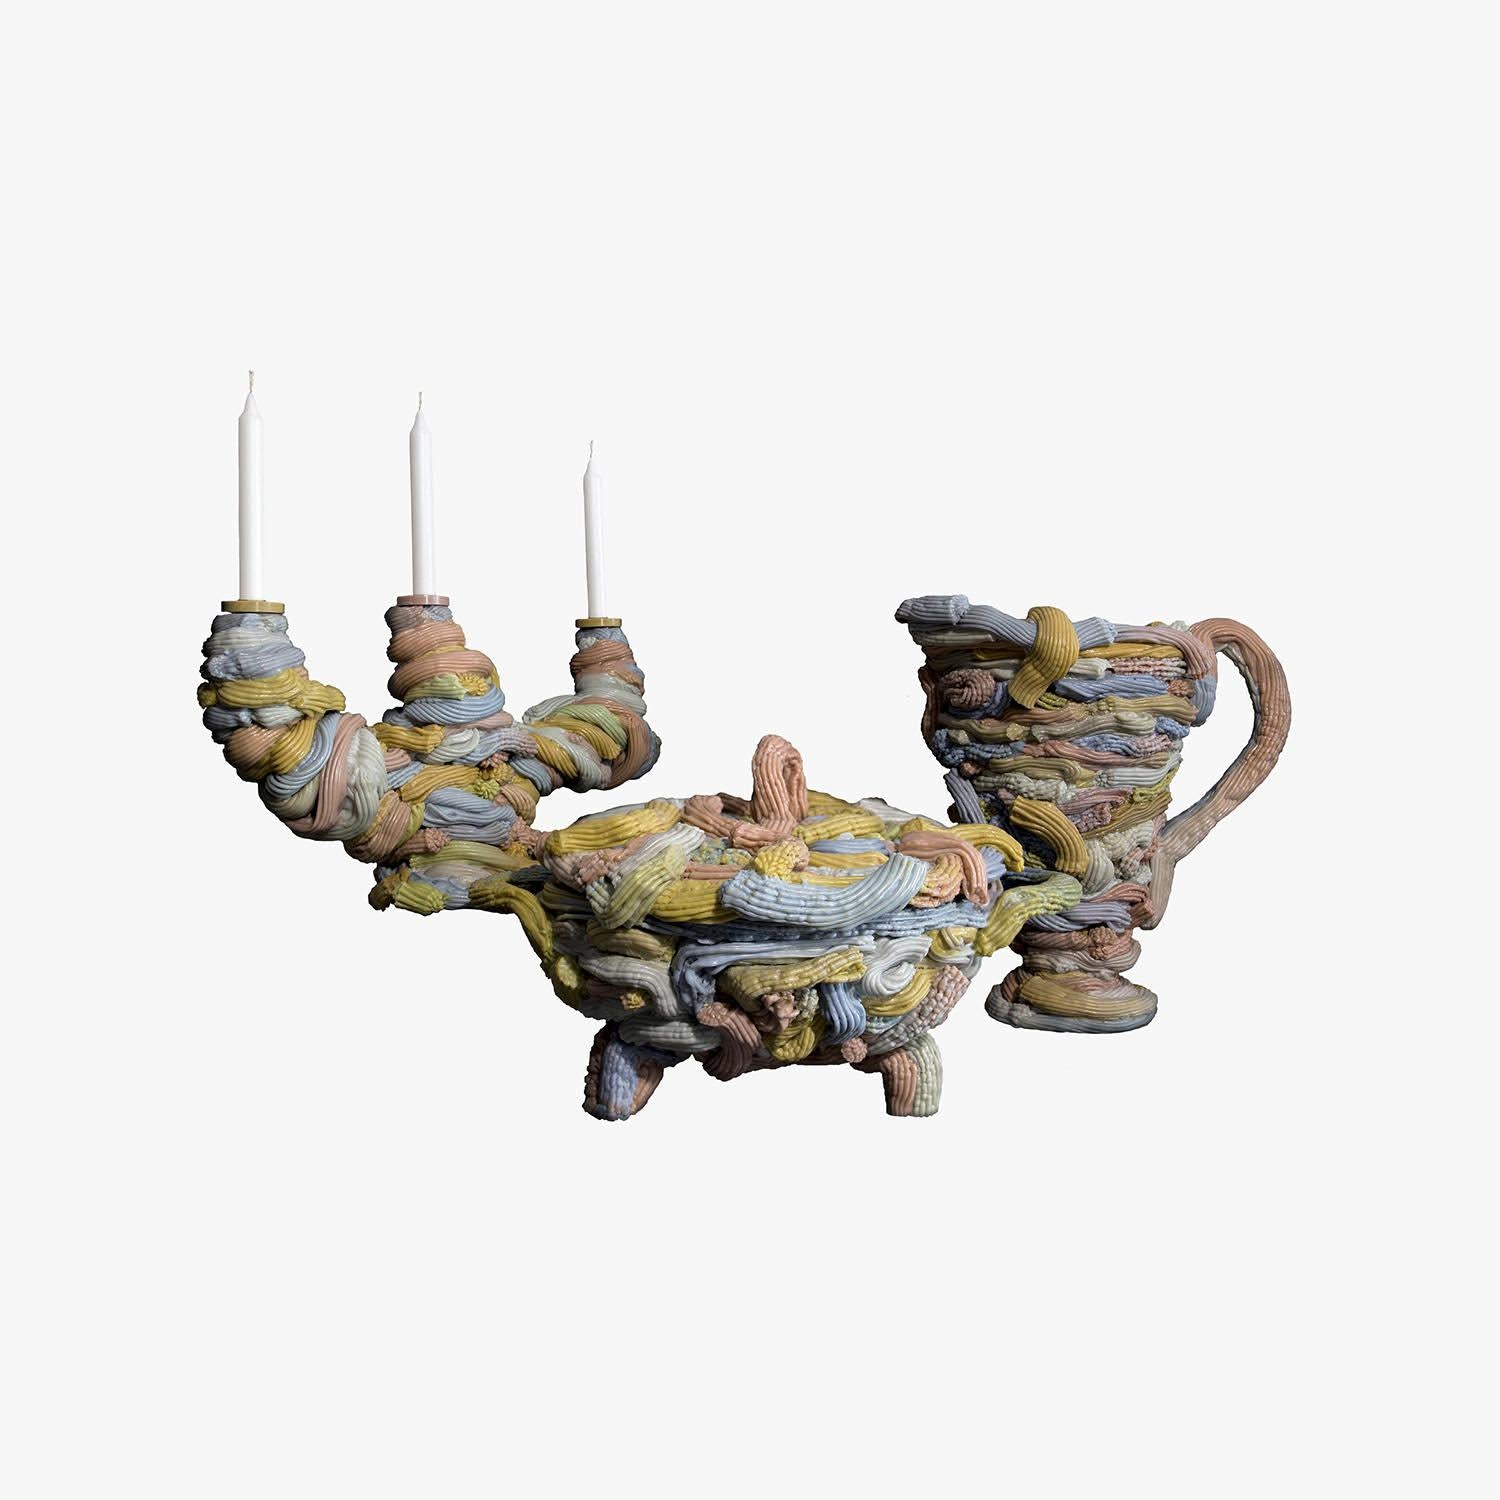 Plastic Baroque Ceremonial Tableware Group: Candelabra